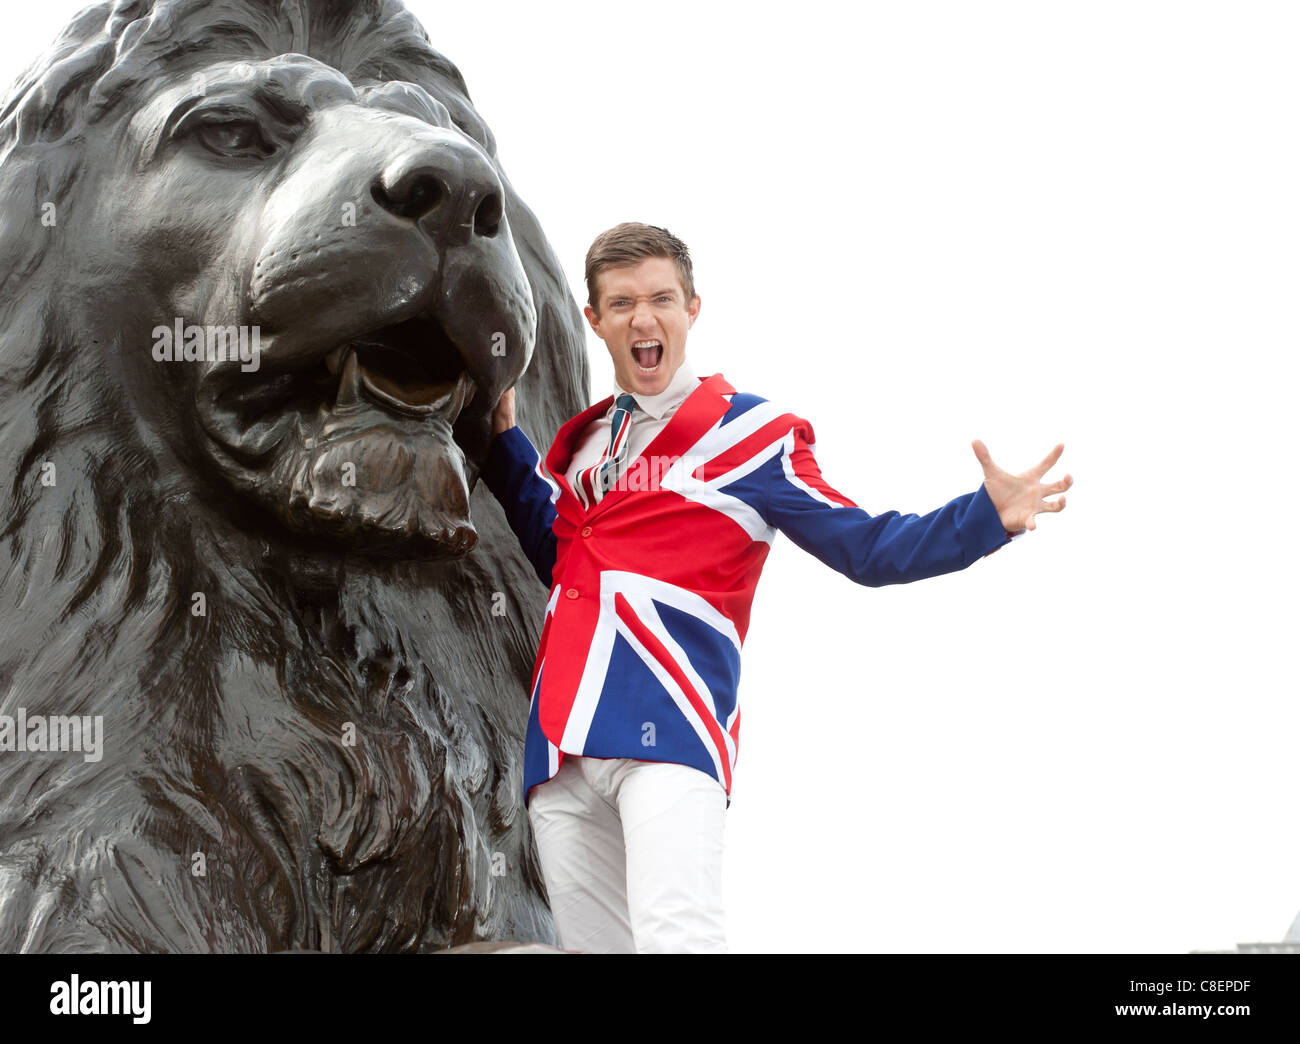 Young man wearing Union Flag jacket roaring next to the lion statue,  Trafalgar Square, London, England - Stock Image